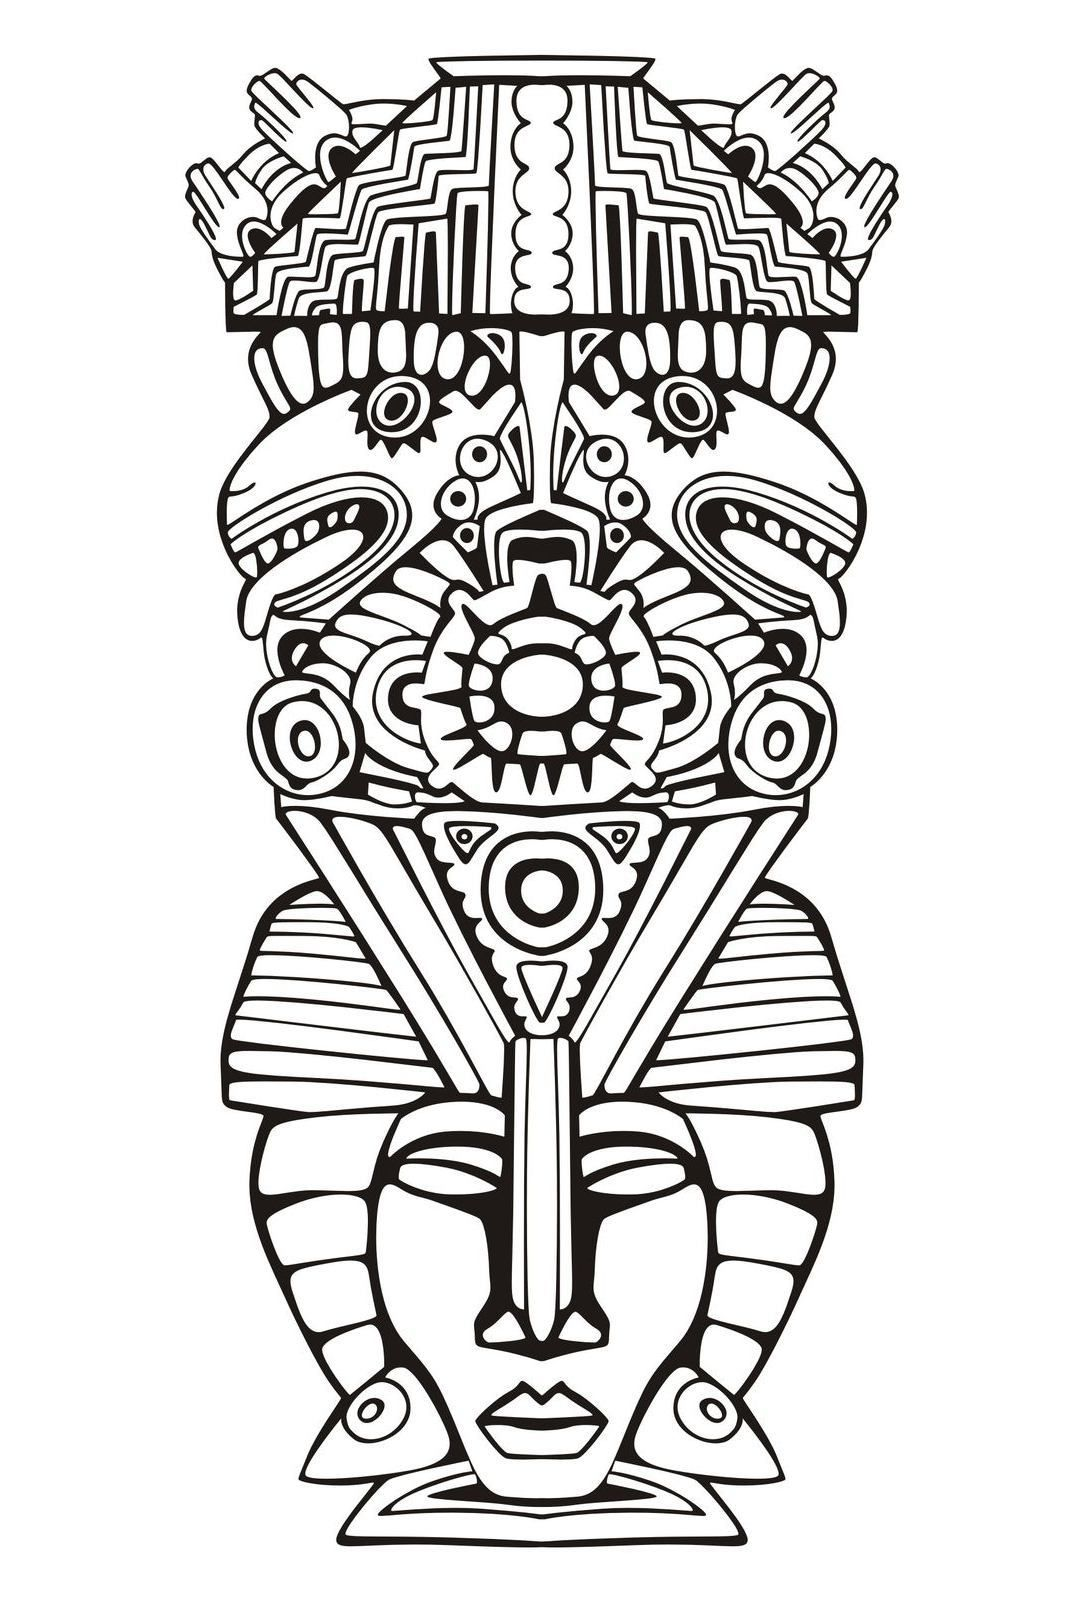 Coloring Pages For Adults Masks : Adult coloring pages mayan mask